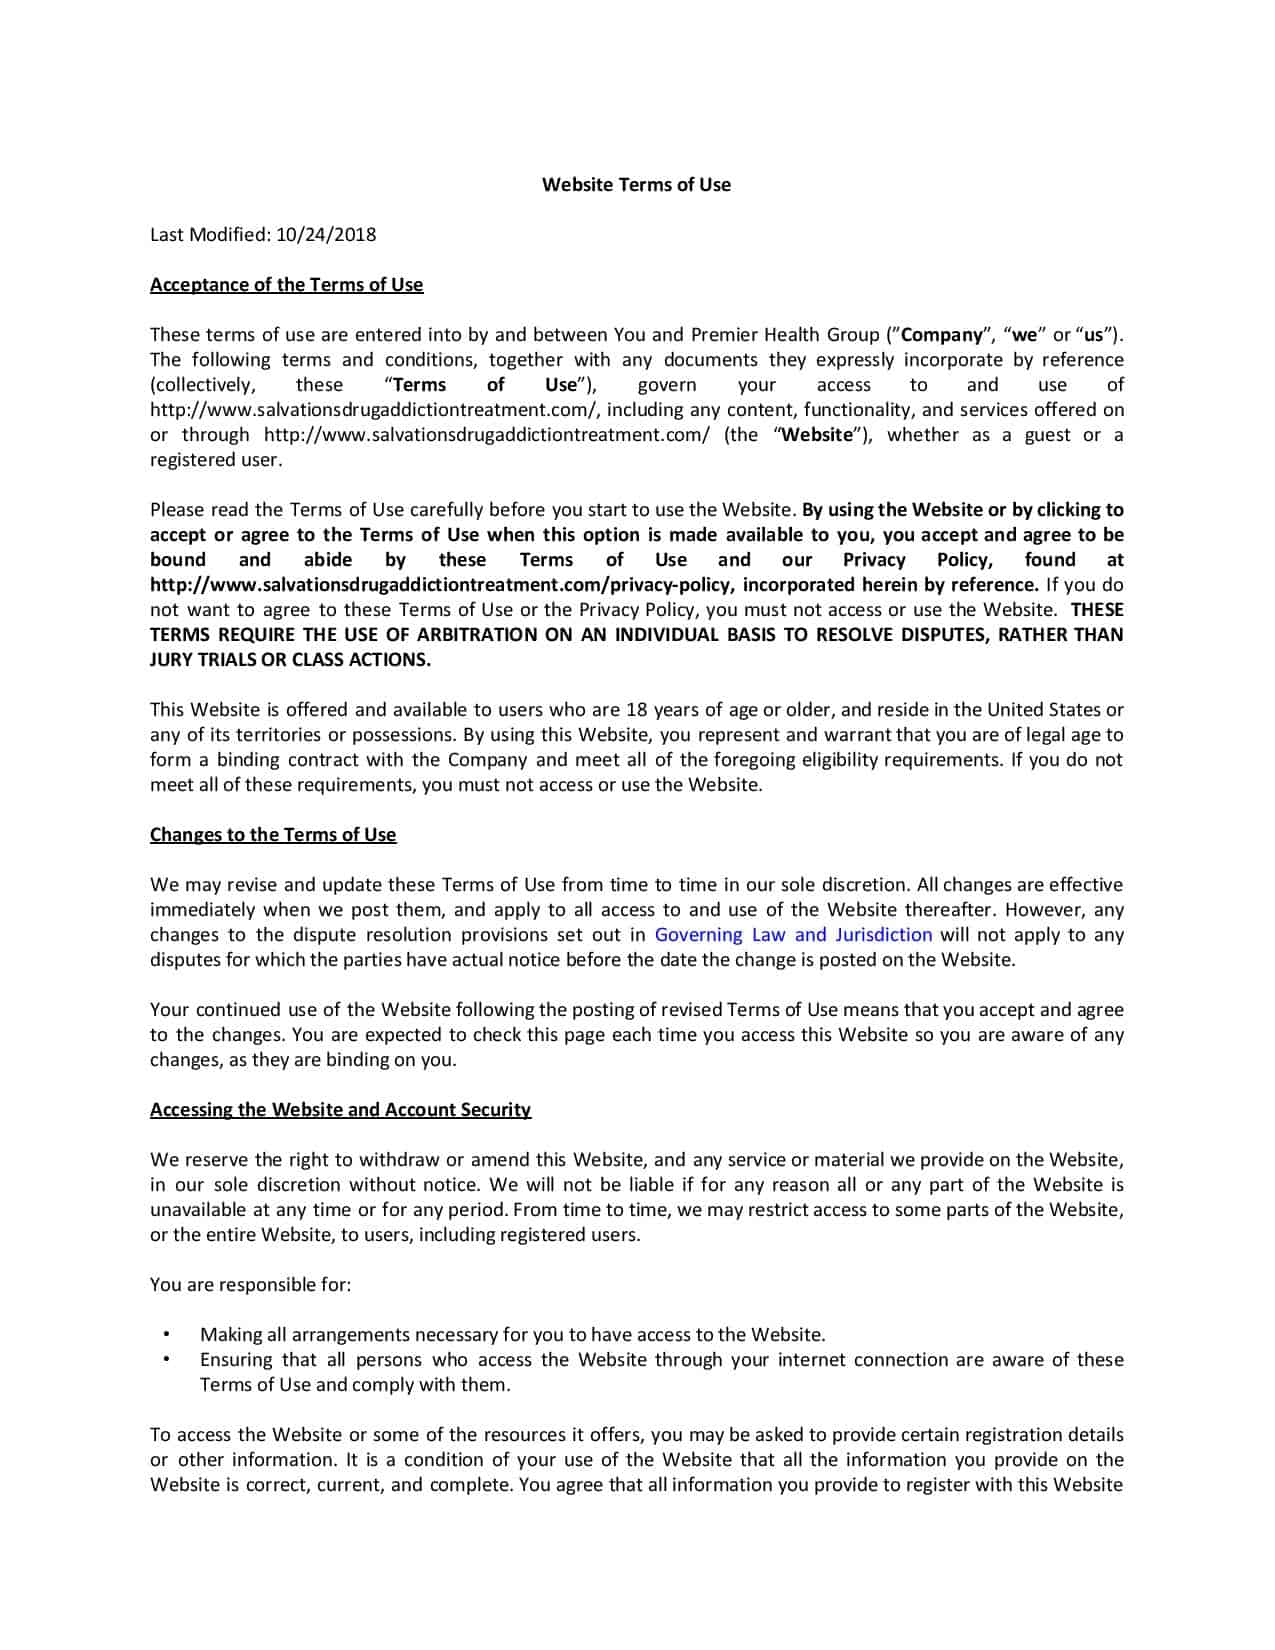 salvationsdrugaddictiontreatment Terms of Use-page-001